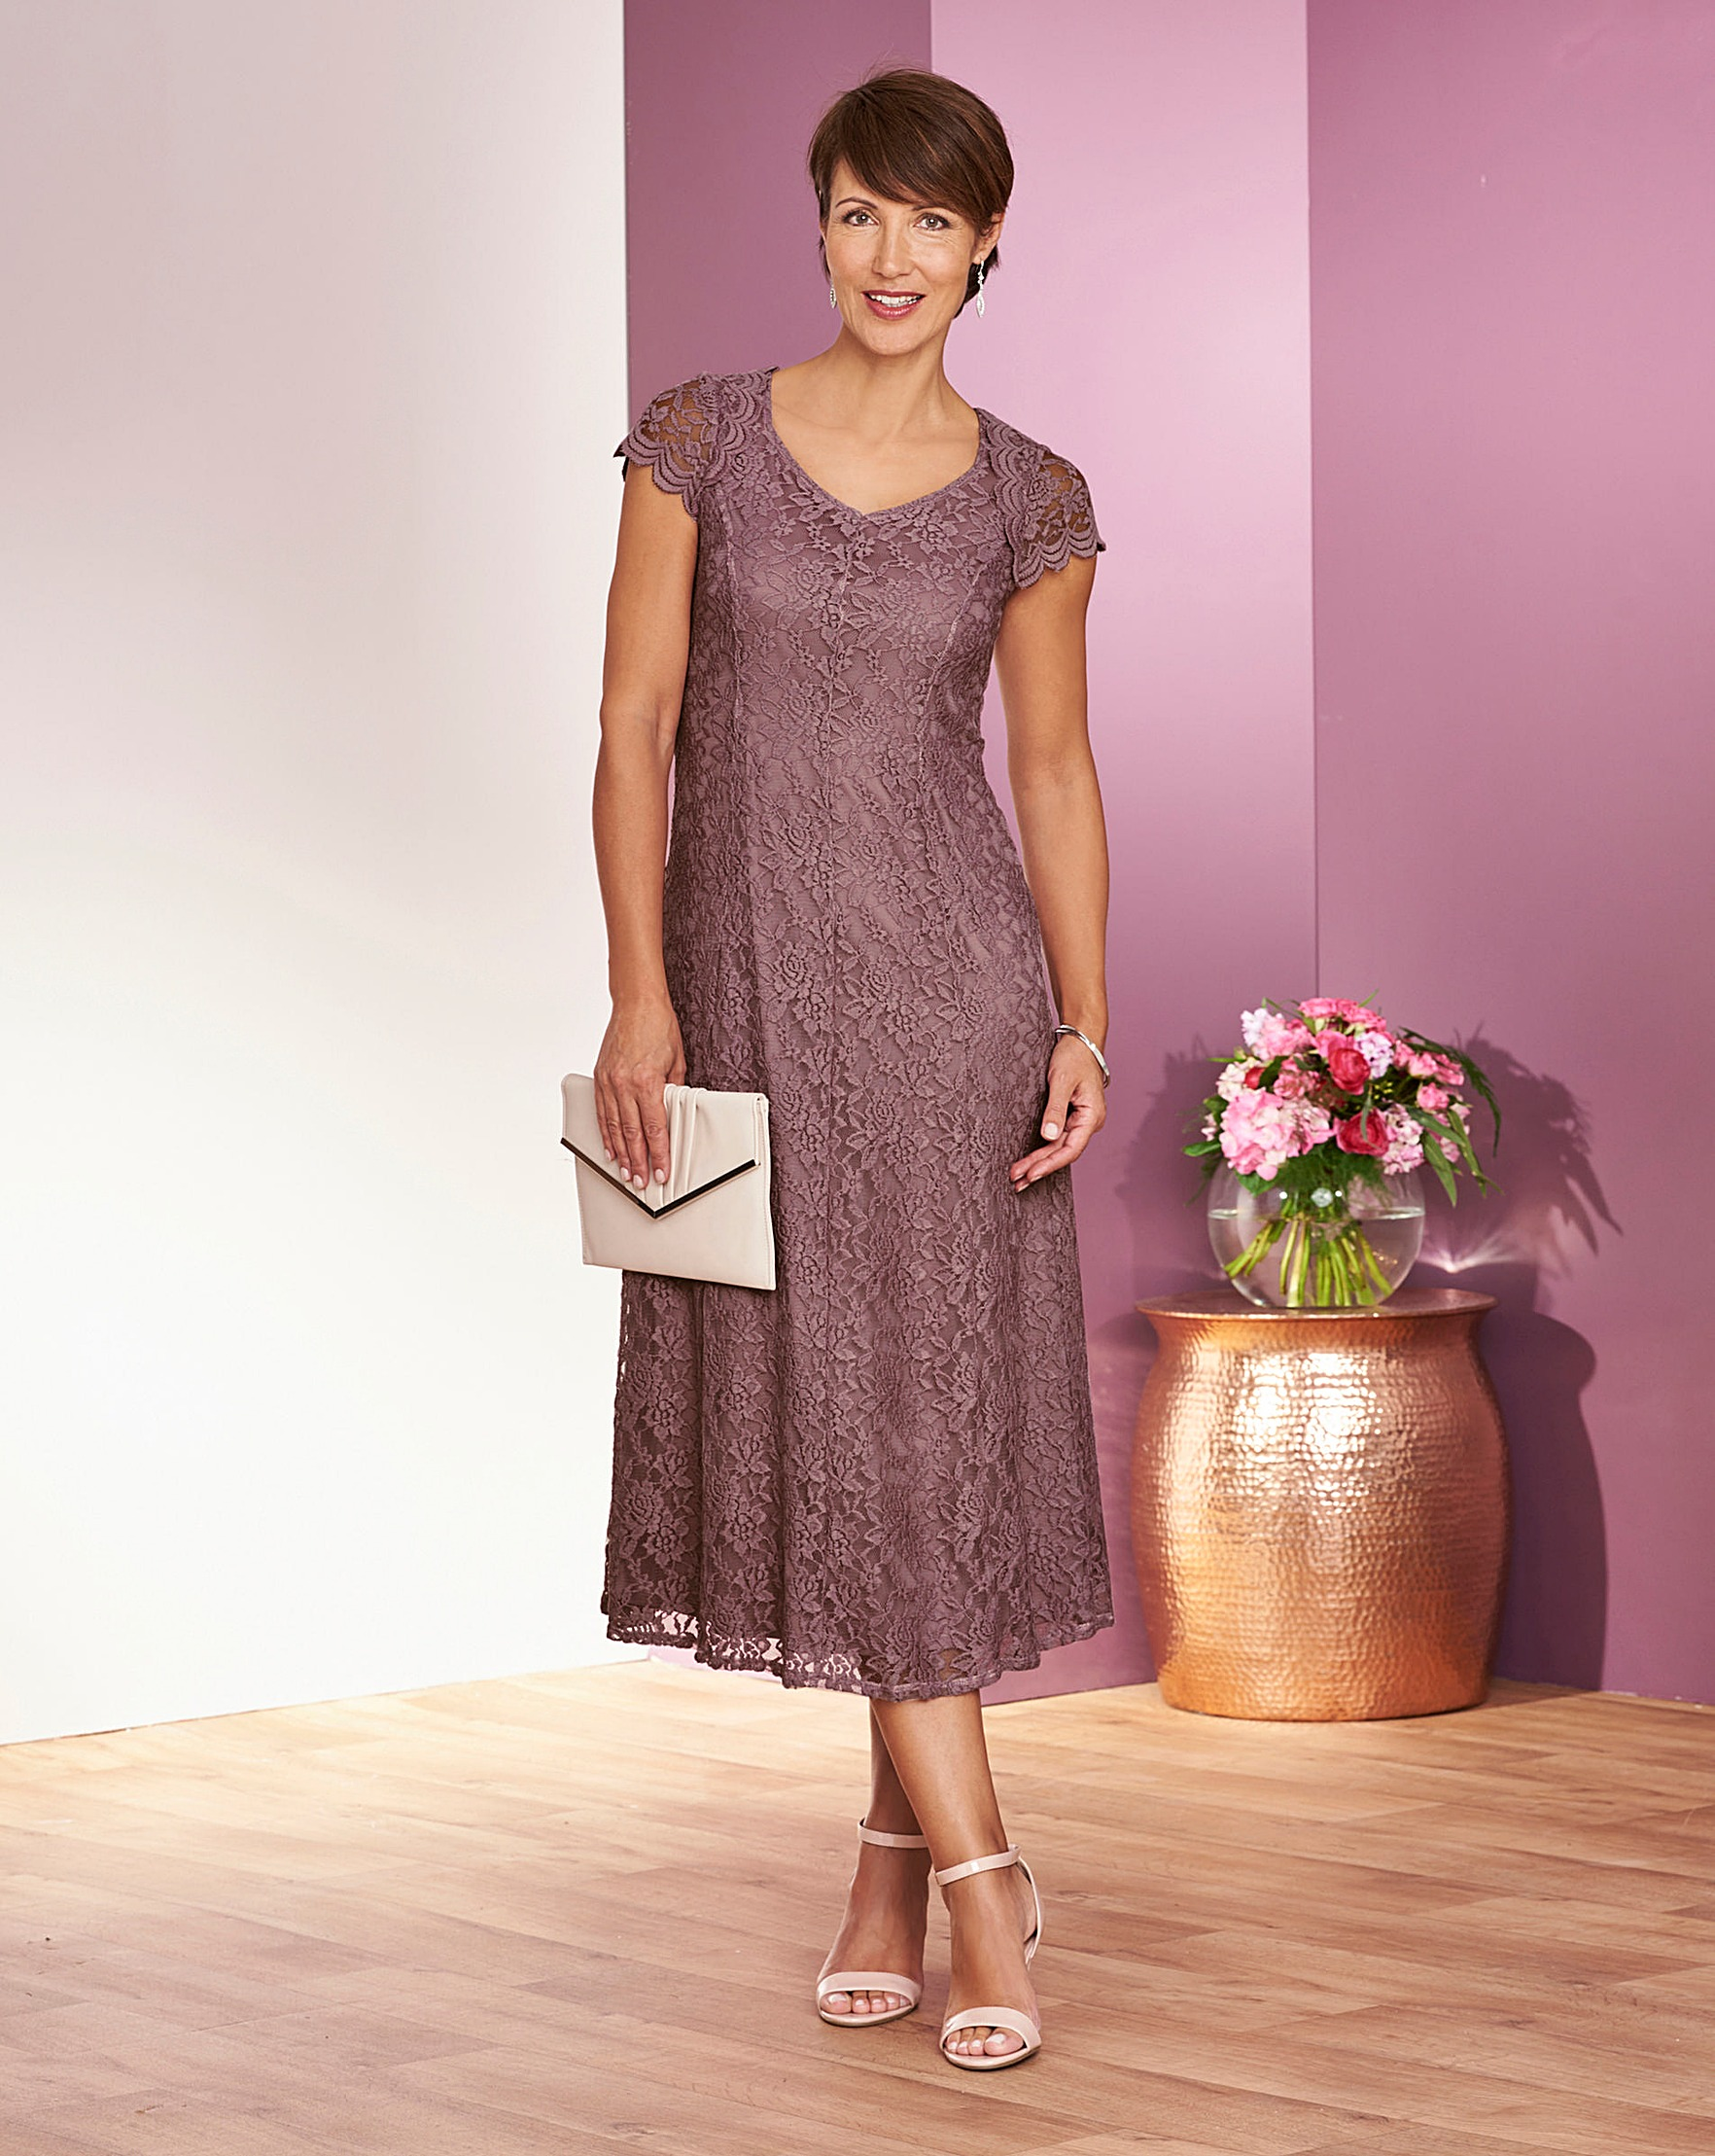 c4f33d7c0 Dusky Pink Lace Dress Uk